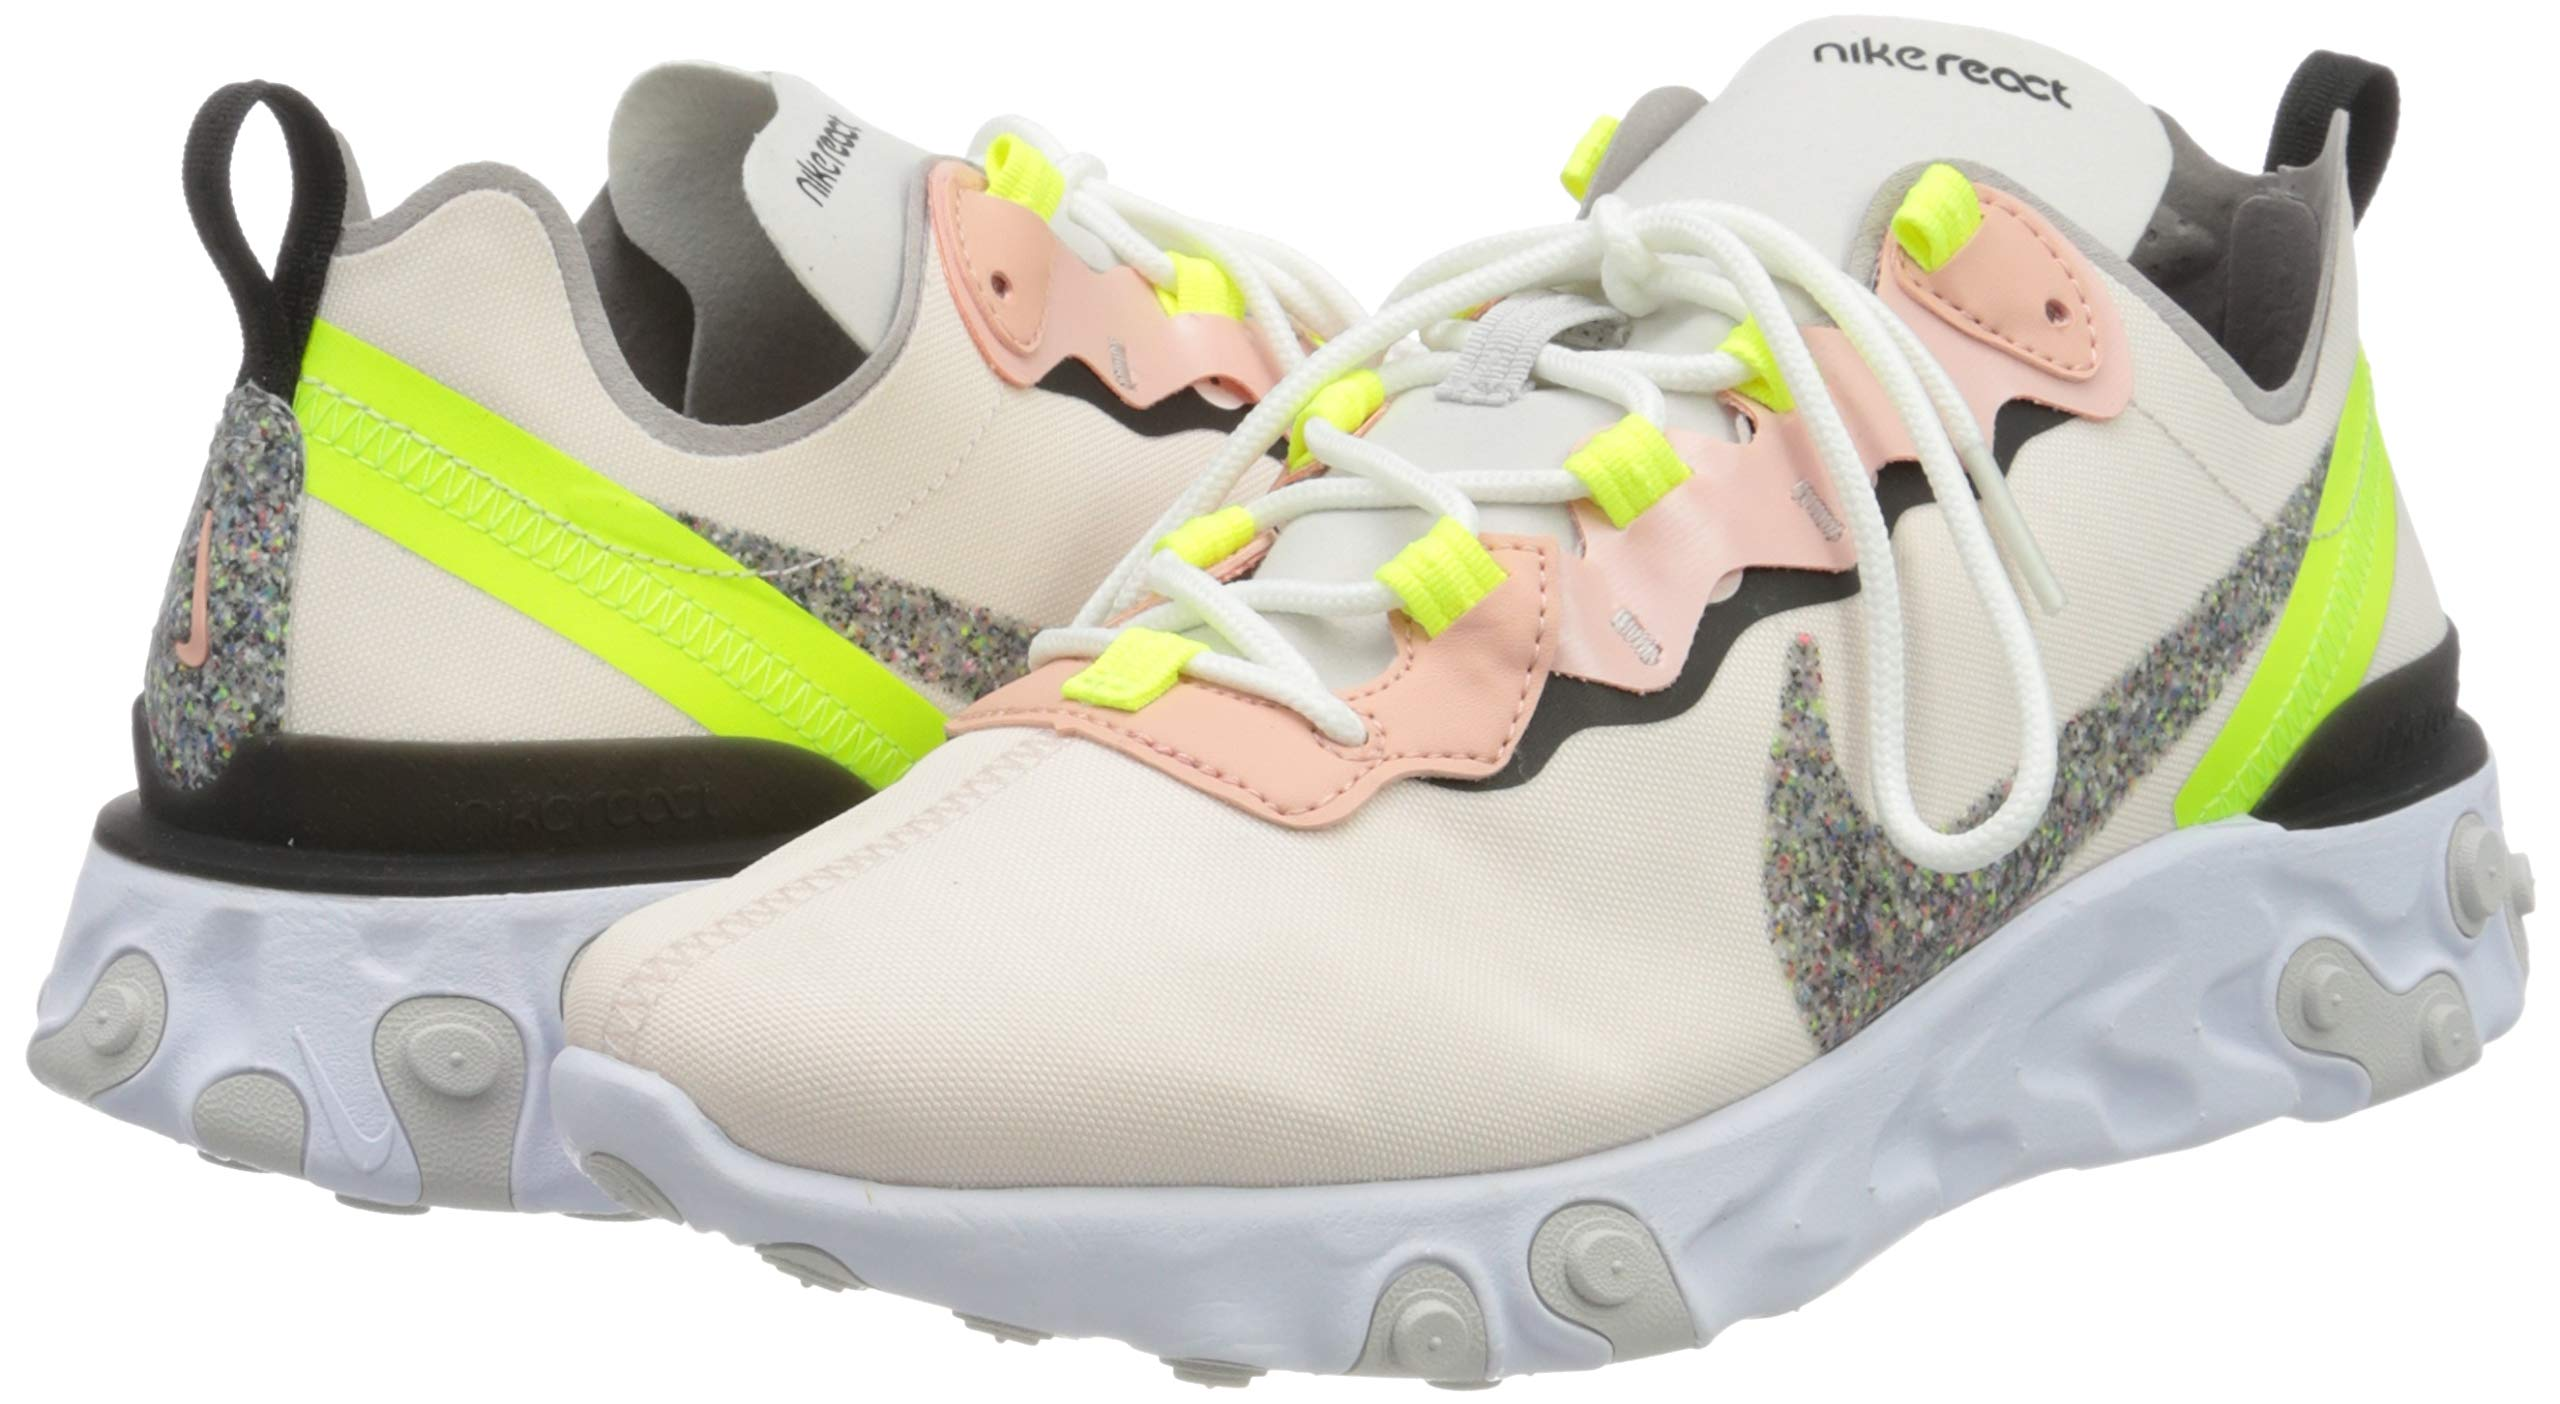 71y3a5G98IL - Nike Women's W React Element 55 PRM Track & Field Shoes